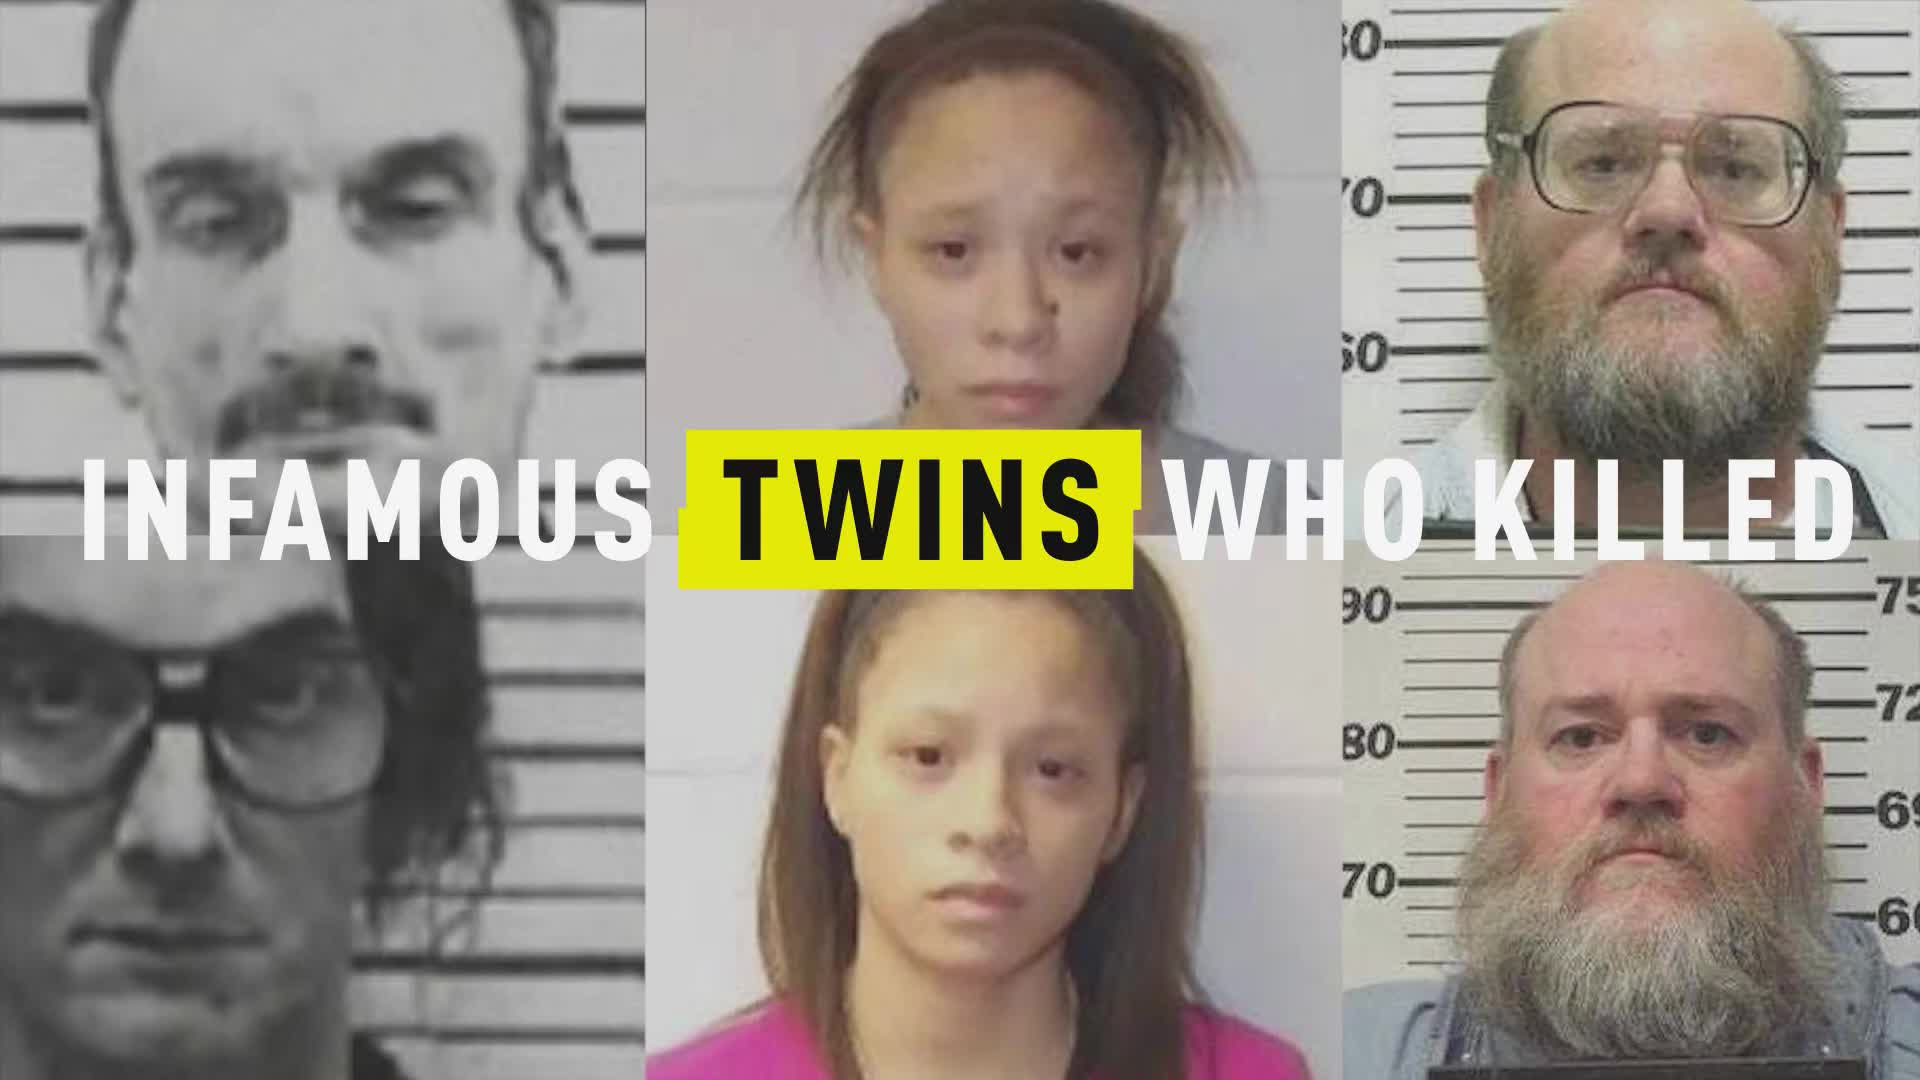 Infamous Twins Who Killed